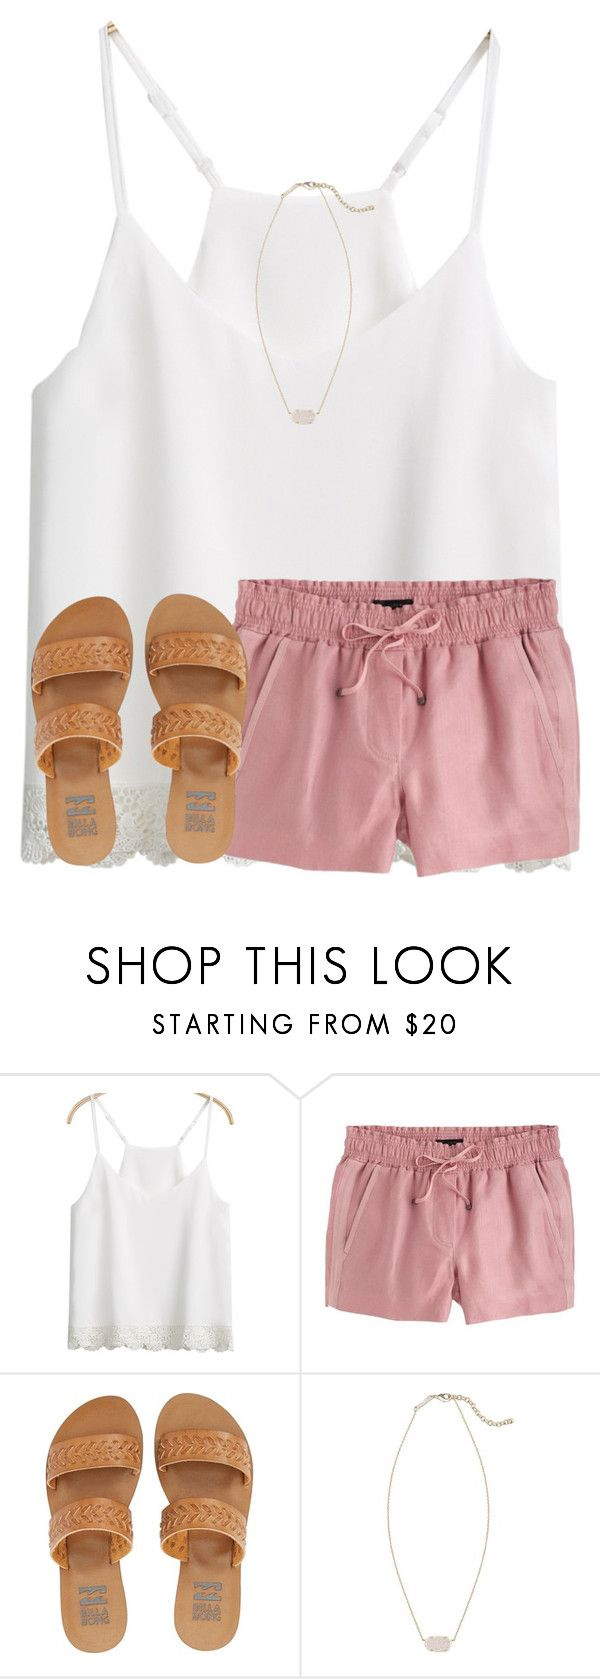 """road trip !"" by ponyboysgirlfriend ❤ liked on Polyvore featuring J.Crew, Billabong and Kendra Scott"